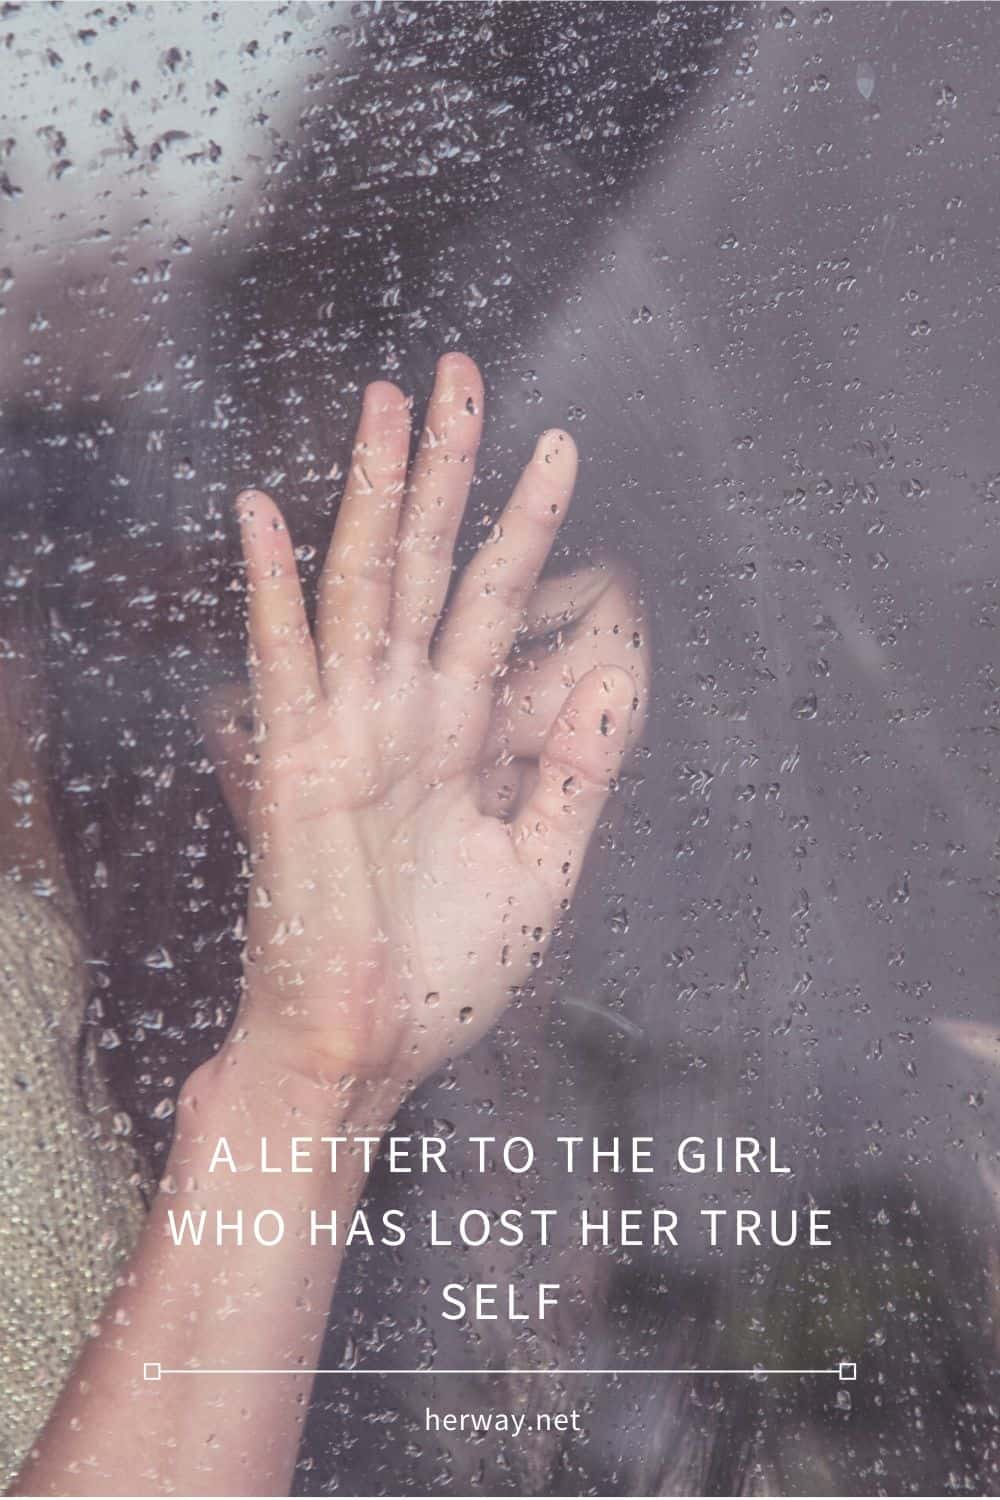 A LETTER TO THE GIRL WHO HAS LOST HER TRUE SELF